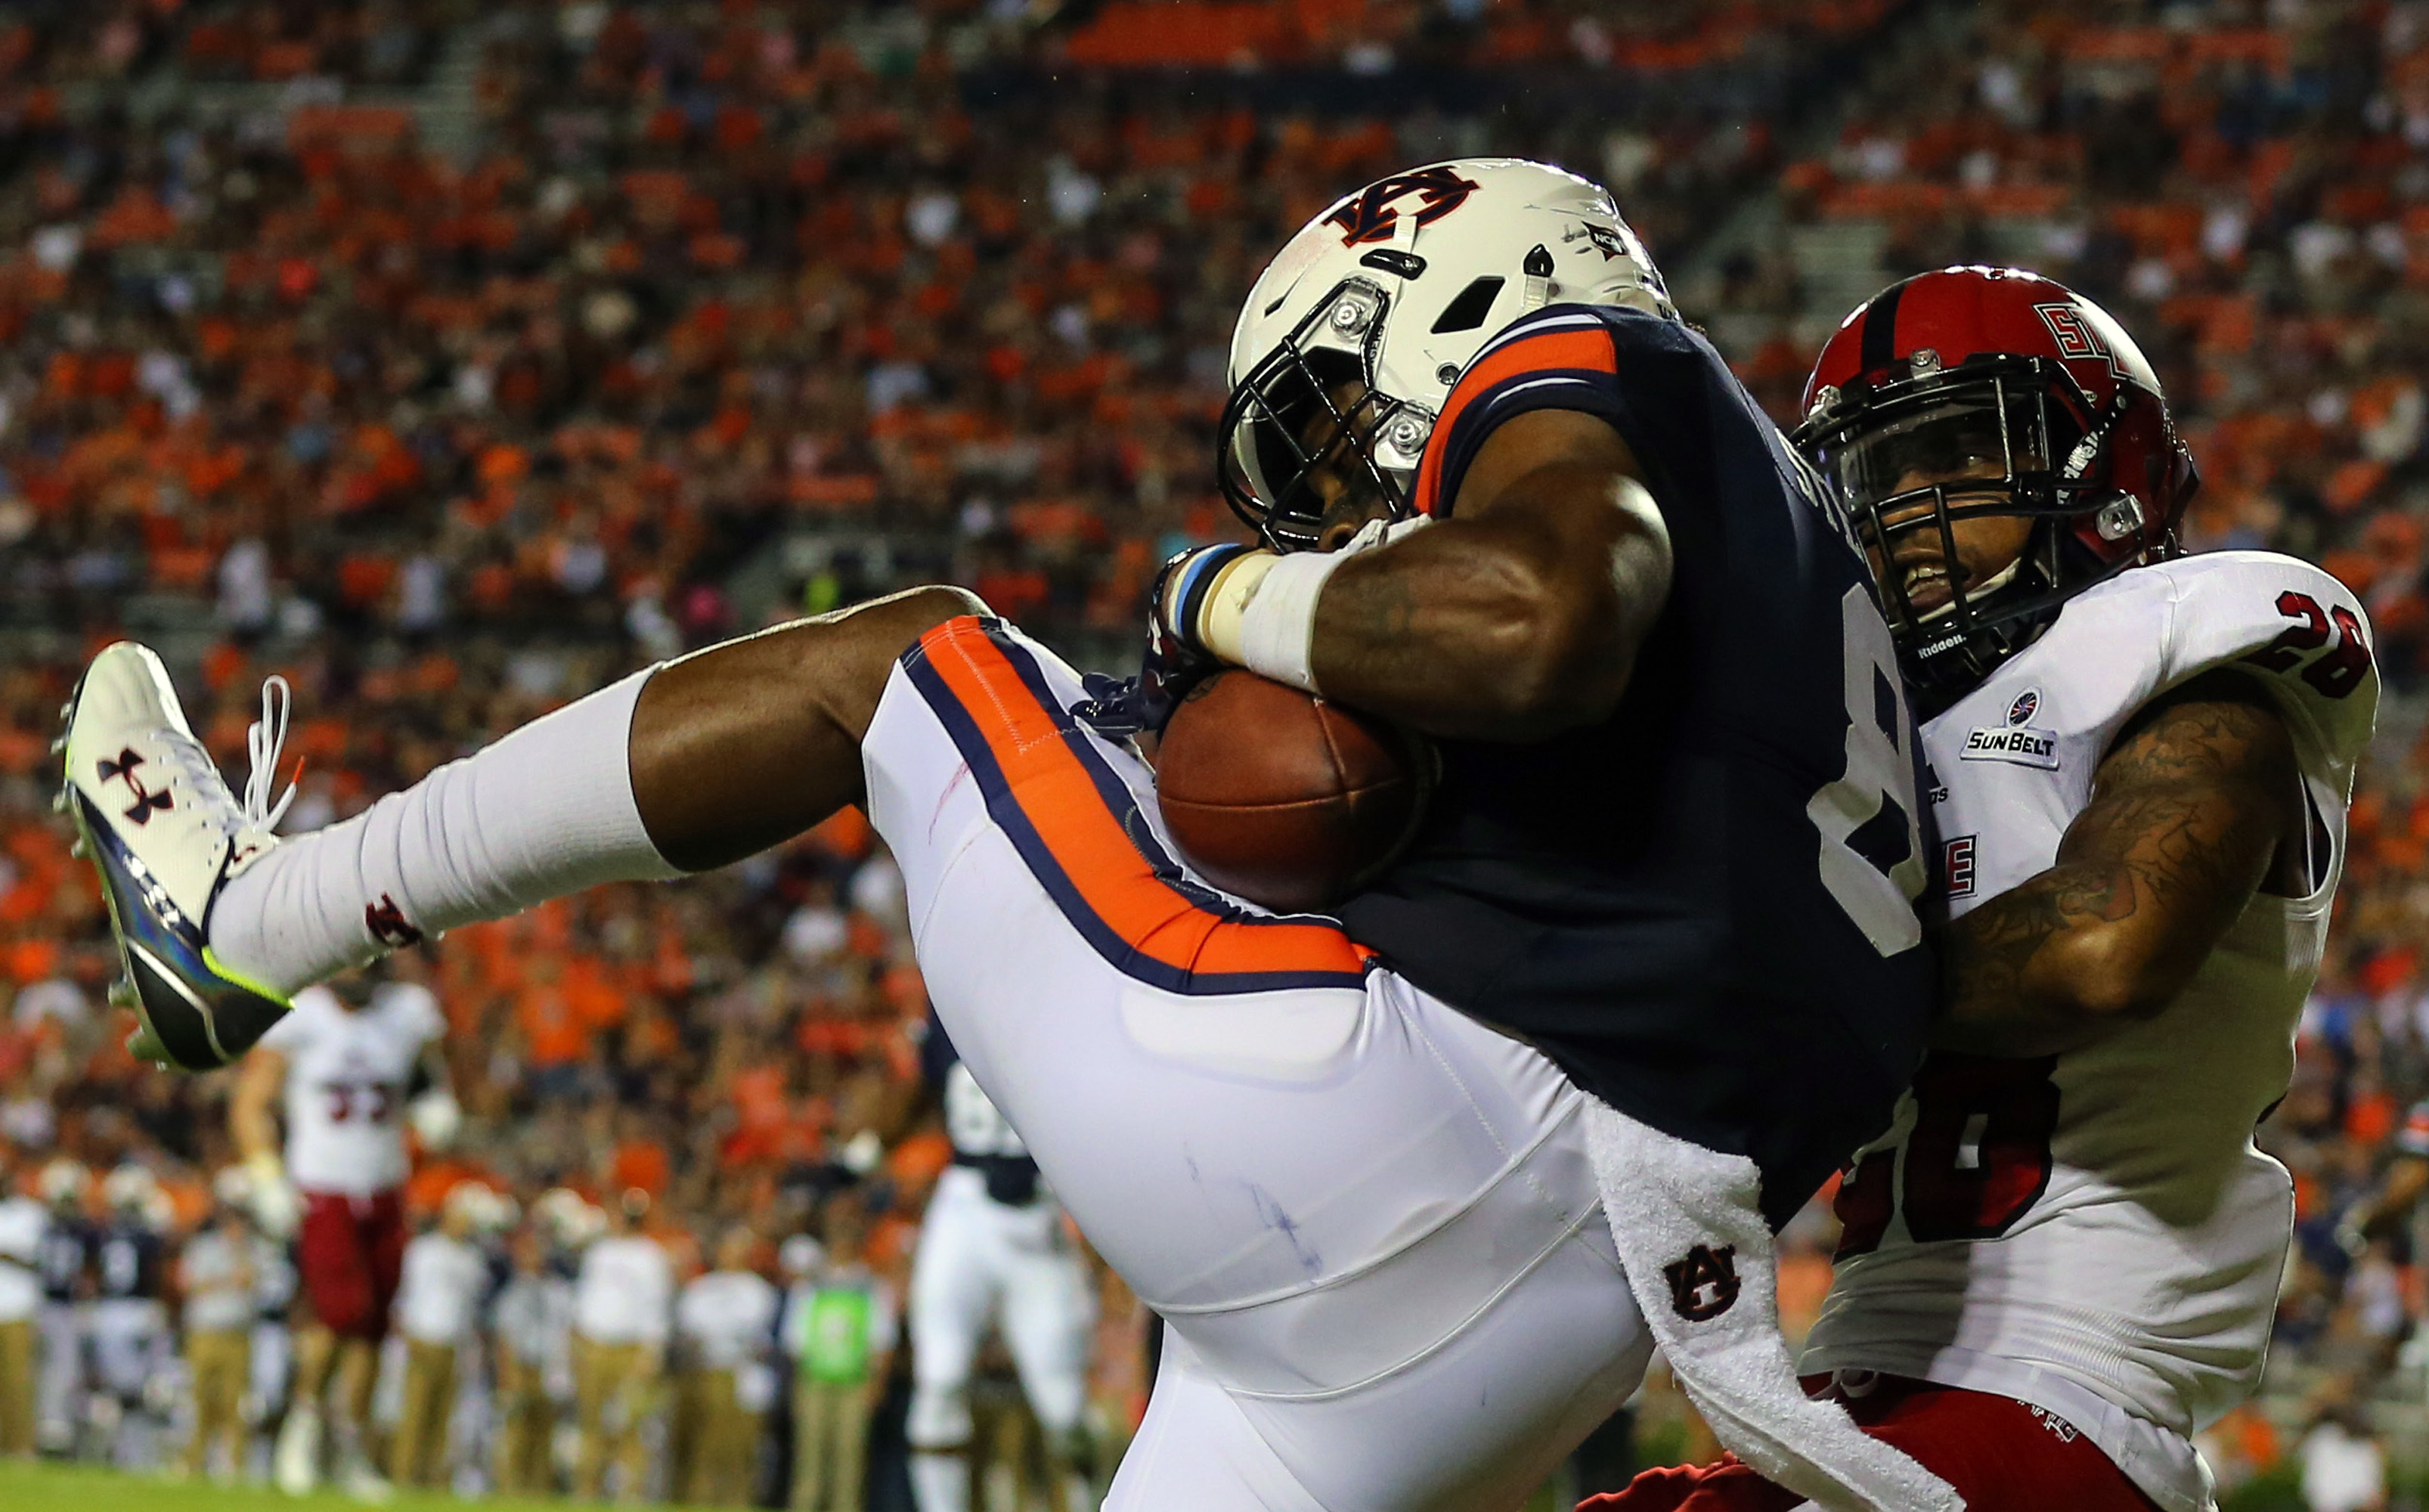 Auburn wide receiver Tony Stevens (8) catches a pass for a touchdown over Arkansas State defensive back Brandon Byner, right, during the second half of an NCAA college football game, Saturday, Sept. 10, 2016, in Auburn, Ala. (AP Photo/Butch Dill)